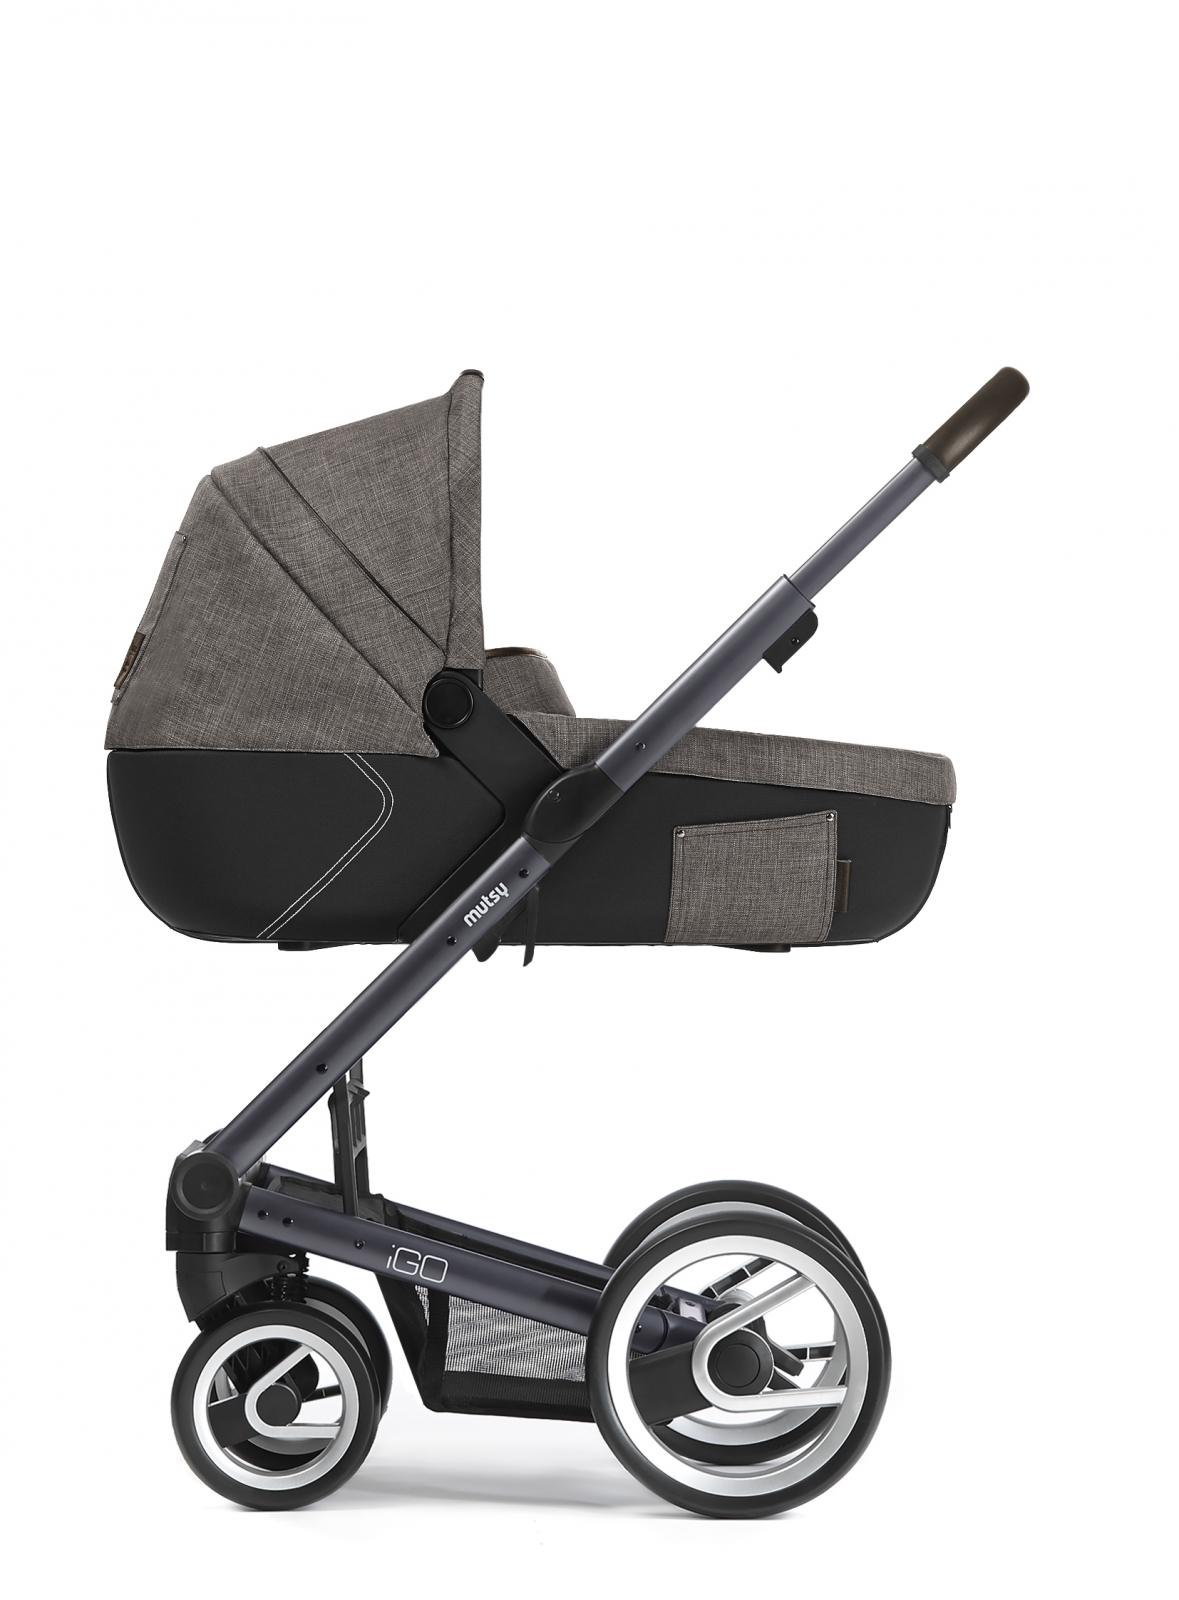 Mutsy Igo Farmer - Dark Grey Chassis